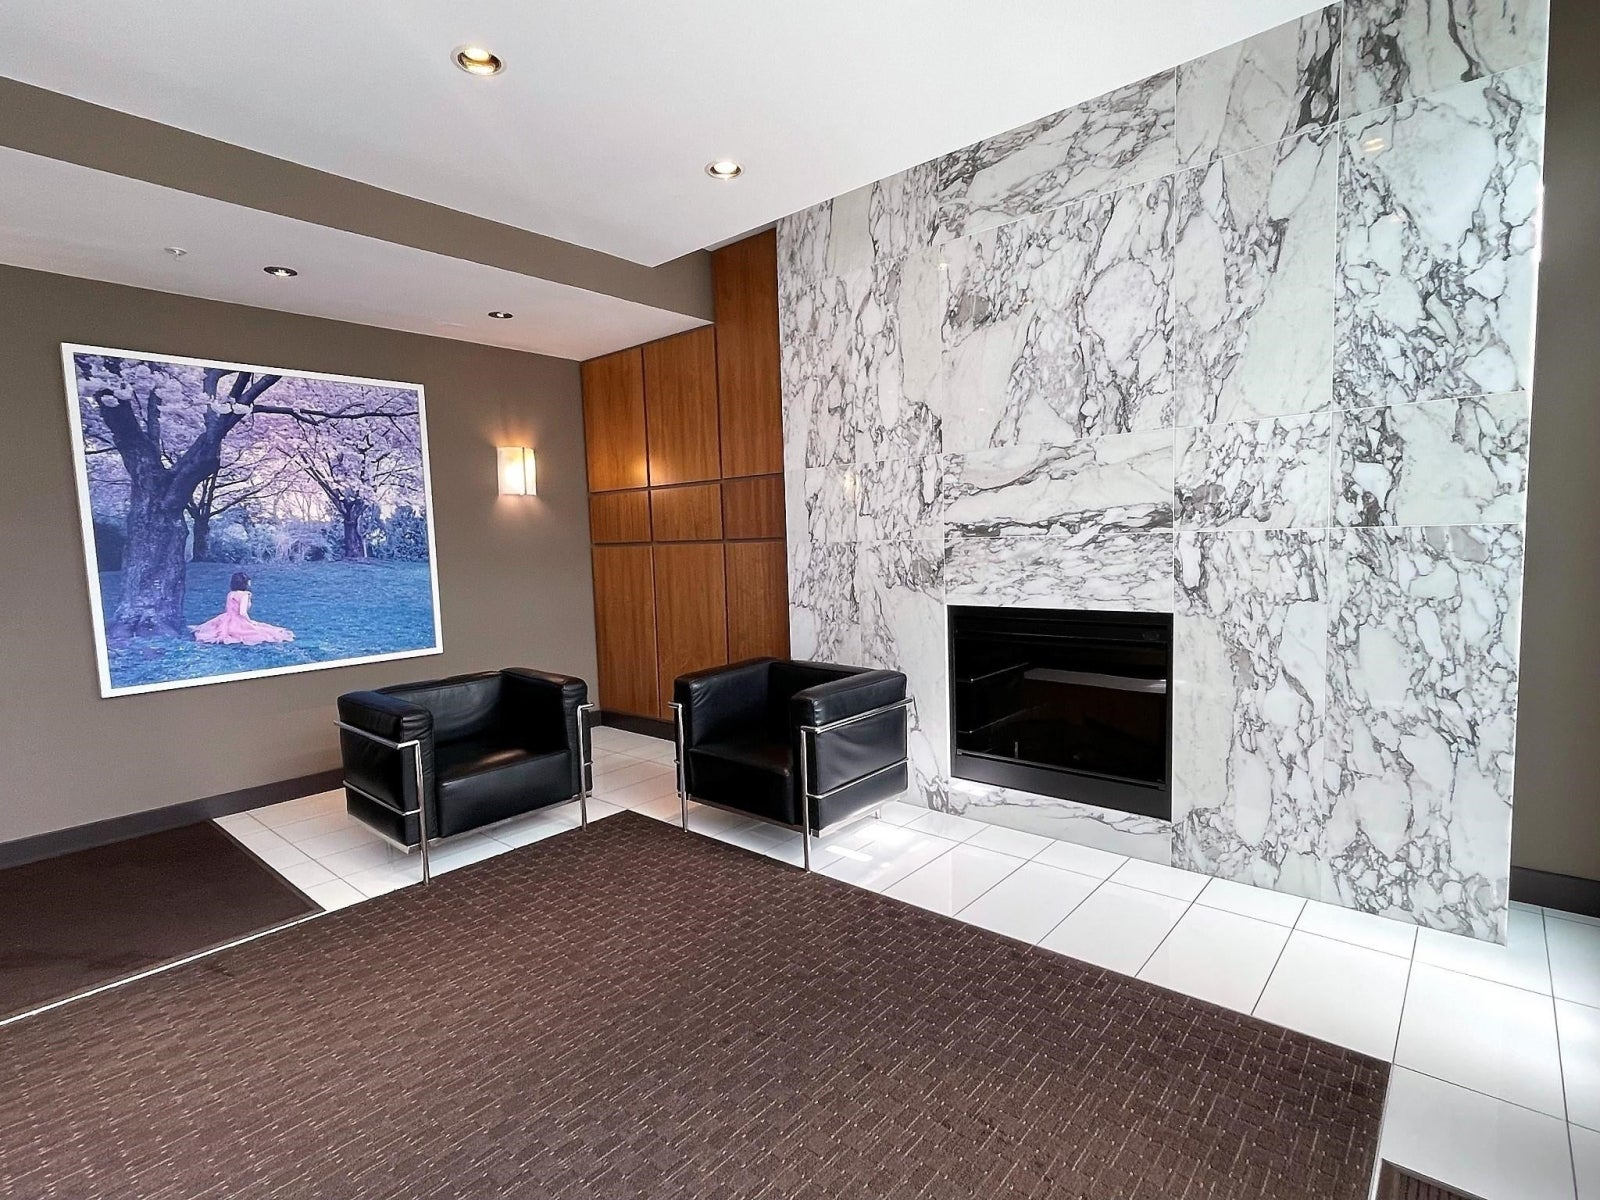 803 1333 W 11TH AVENUE - Fairview VW Apartment/Condo for sale, 2 Bedrooms (R2616288) #3